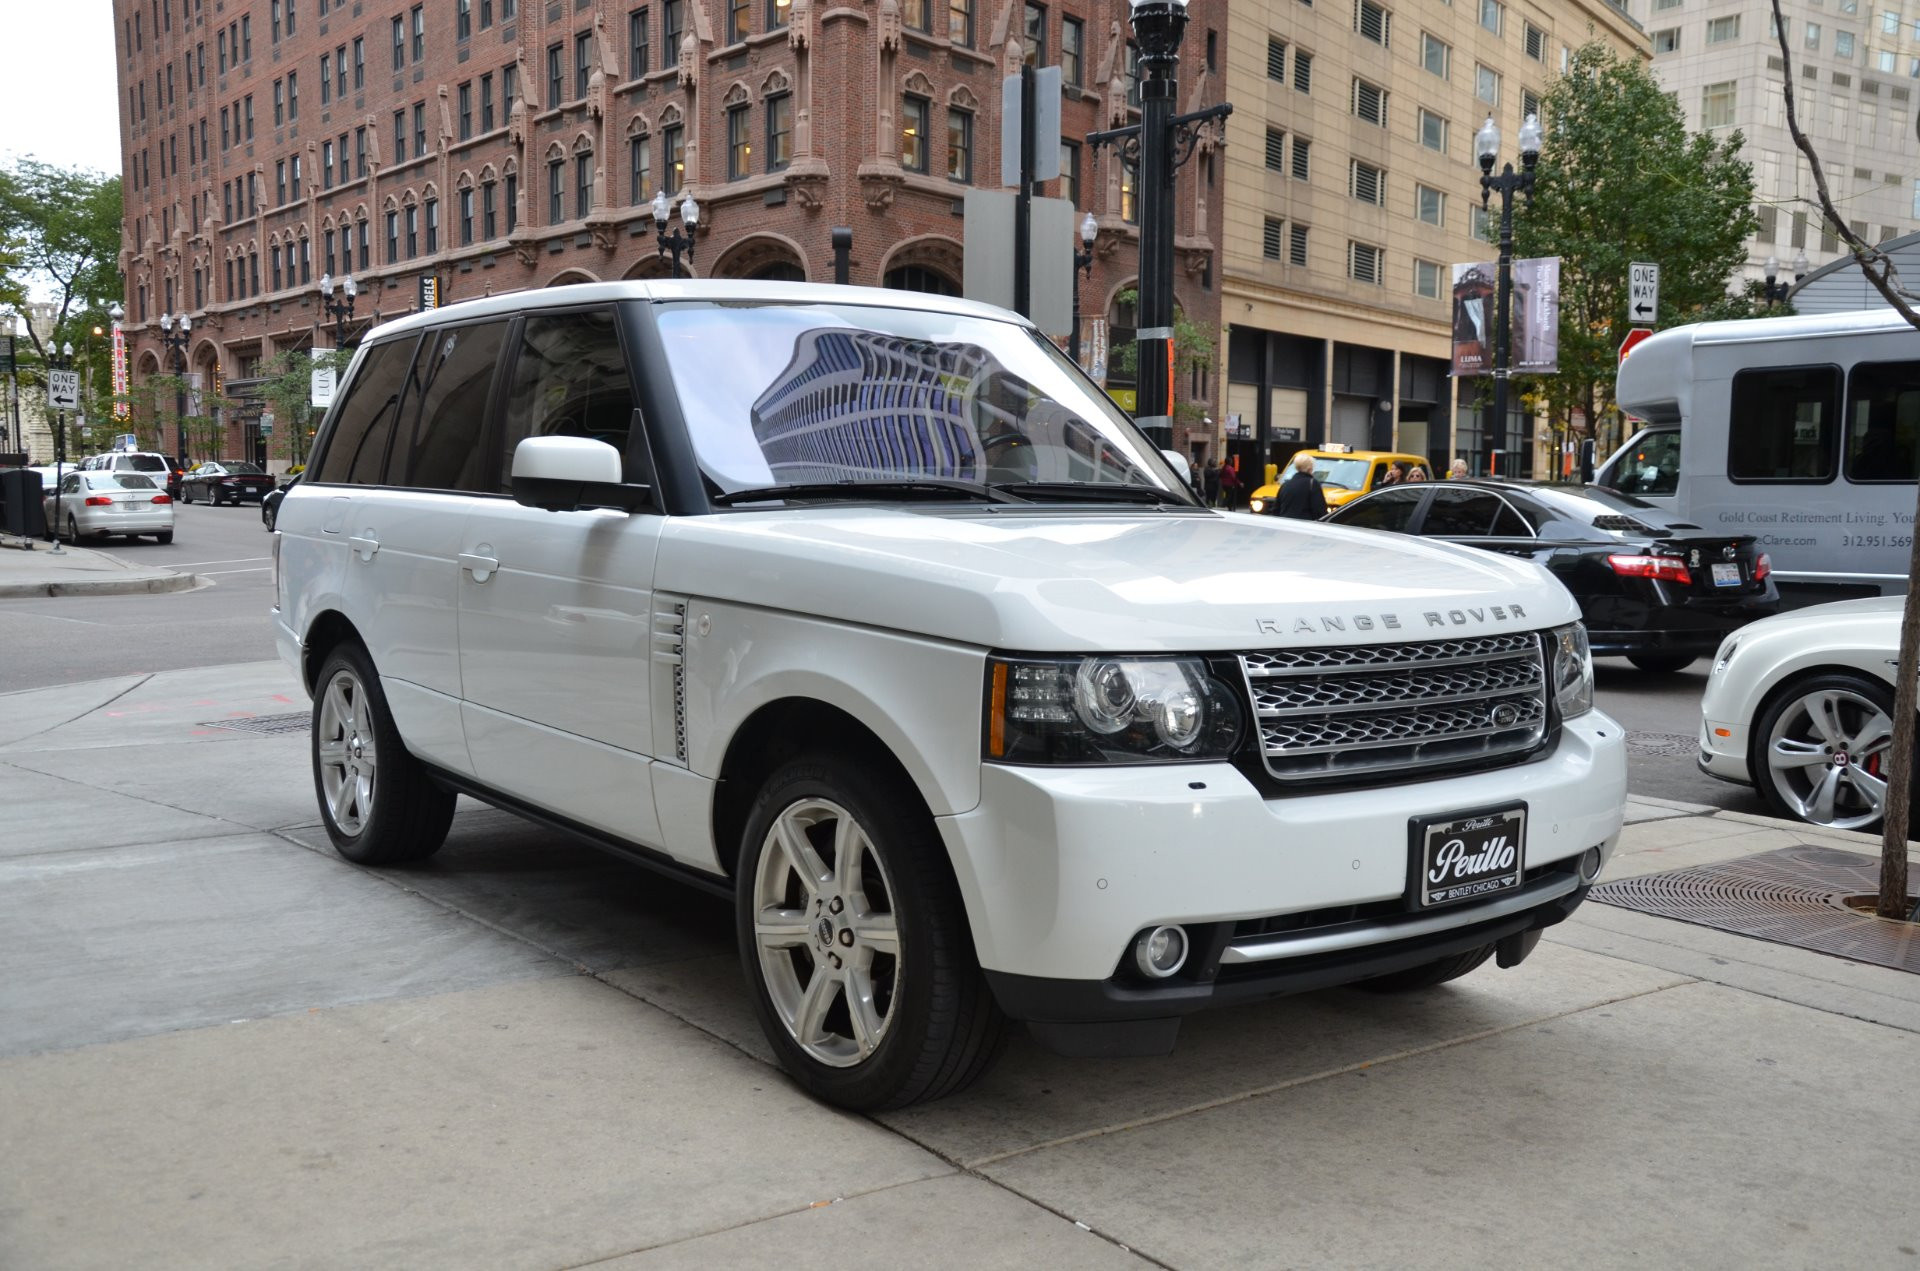 2012 land rover range rover supercharged stock b845a for sale near chicago il il land rover. Black Bedroom Furniture Sets. Home Design Ideas